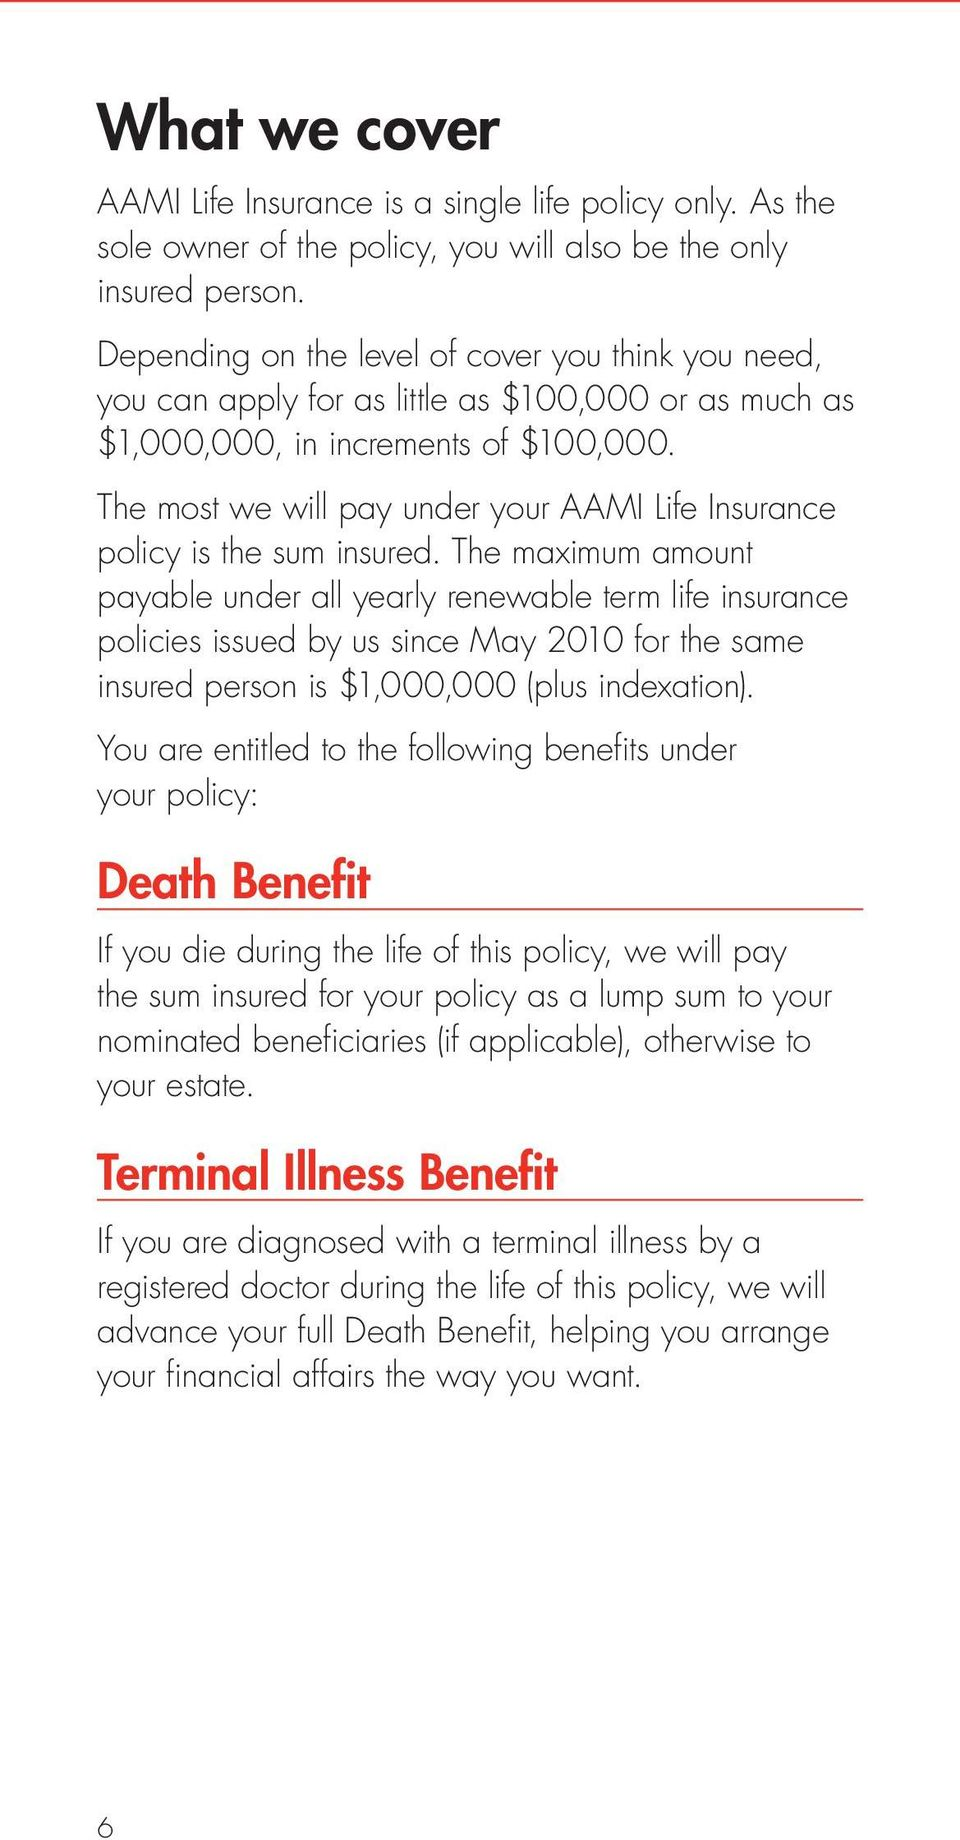 The most we will pay under your AAMI Life Insurance policy is the sum insured.